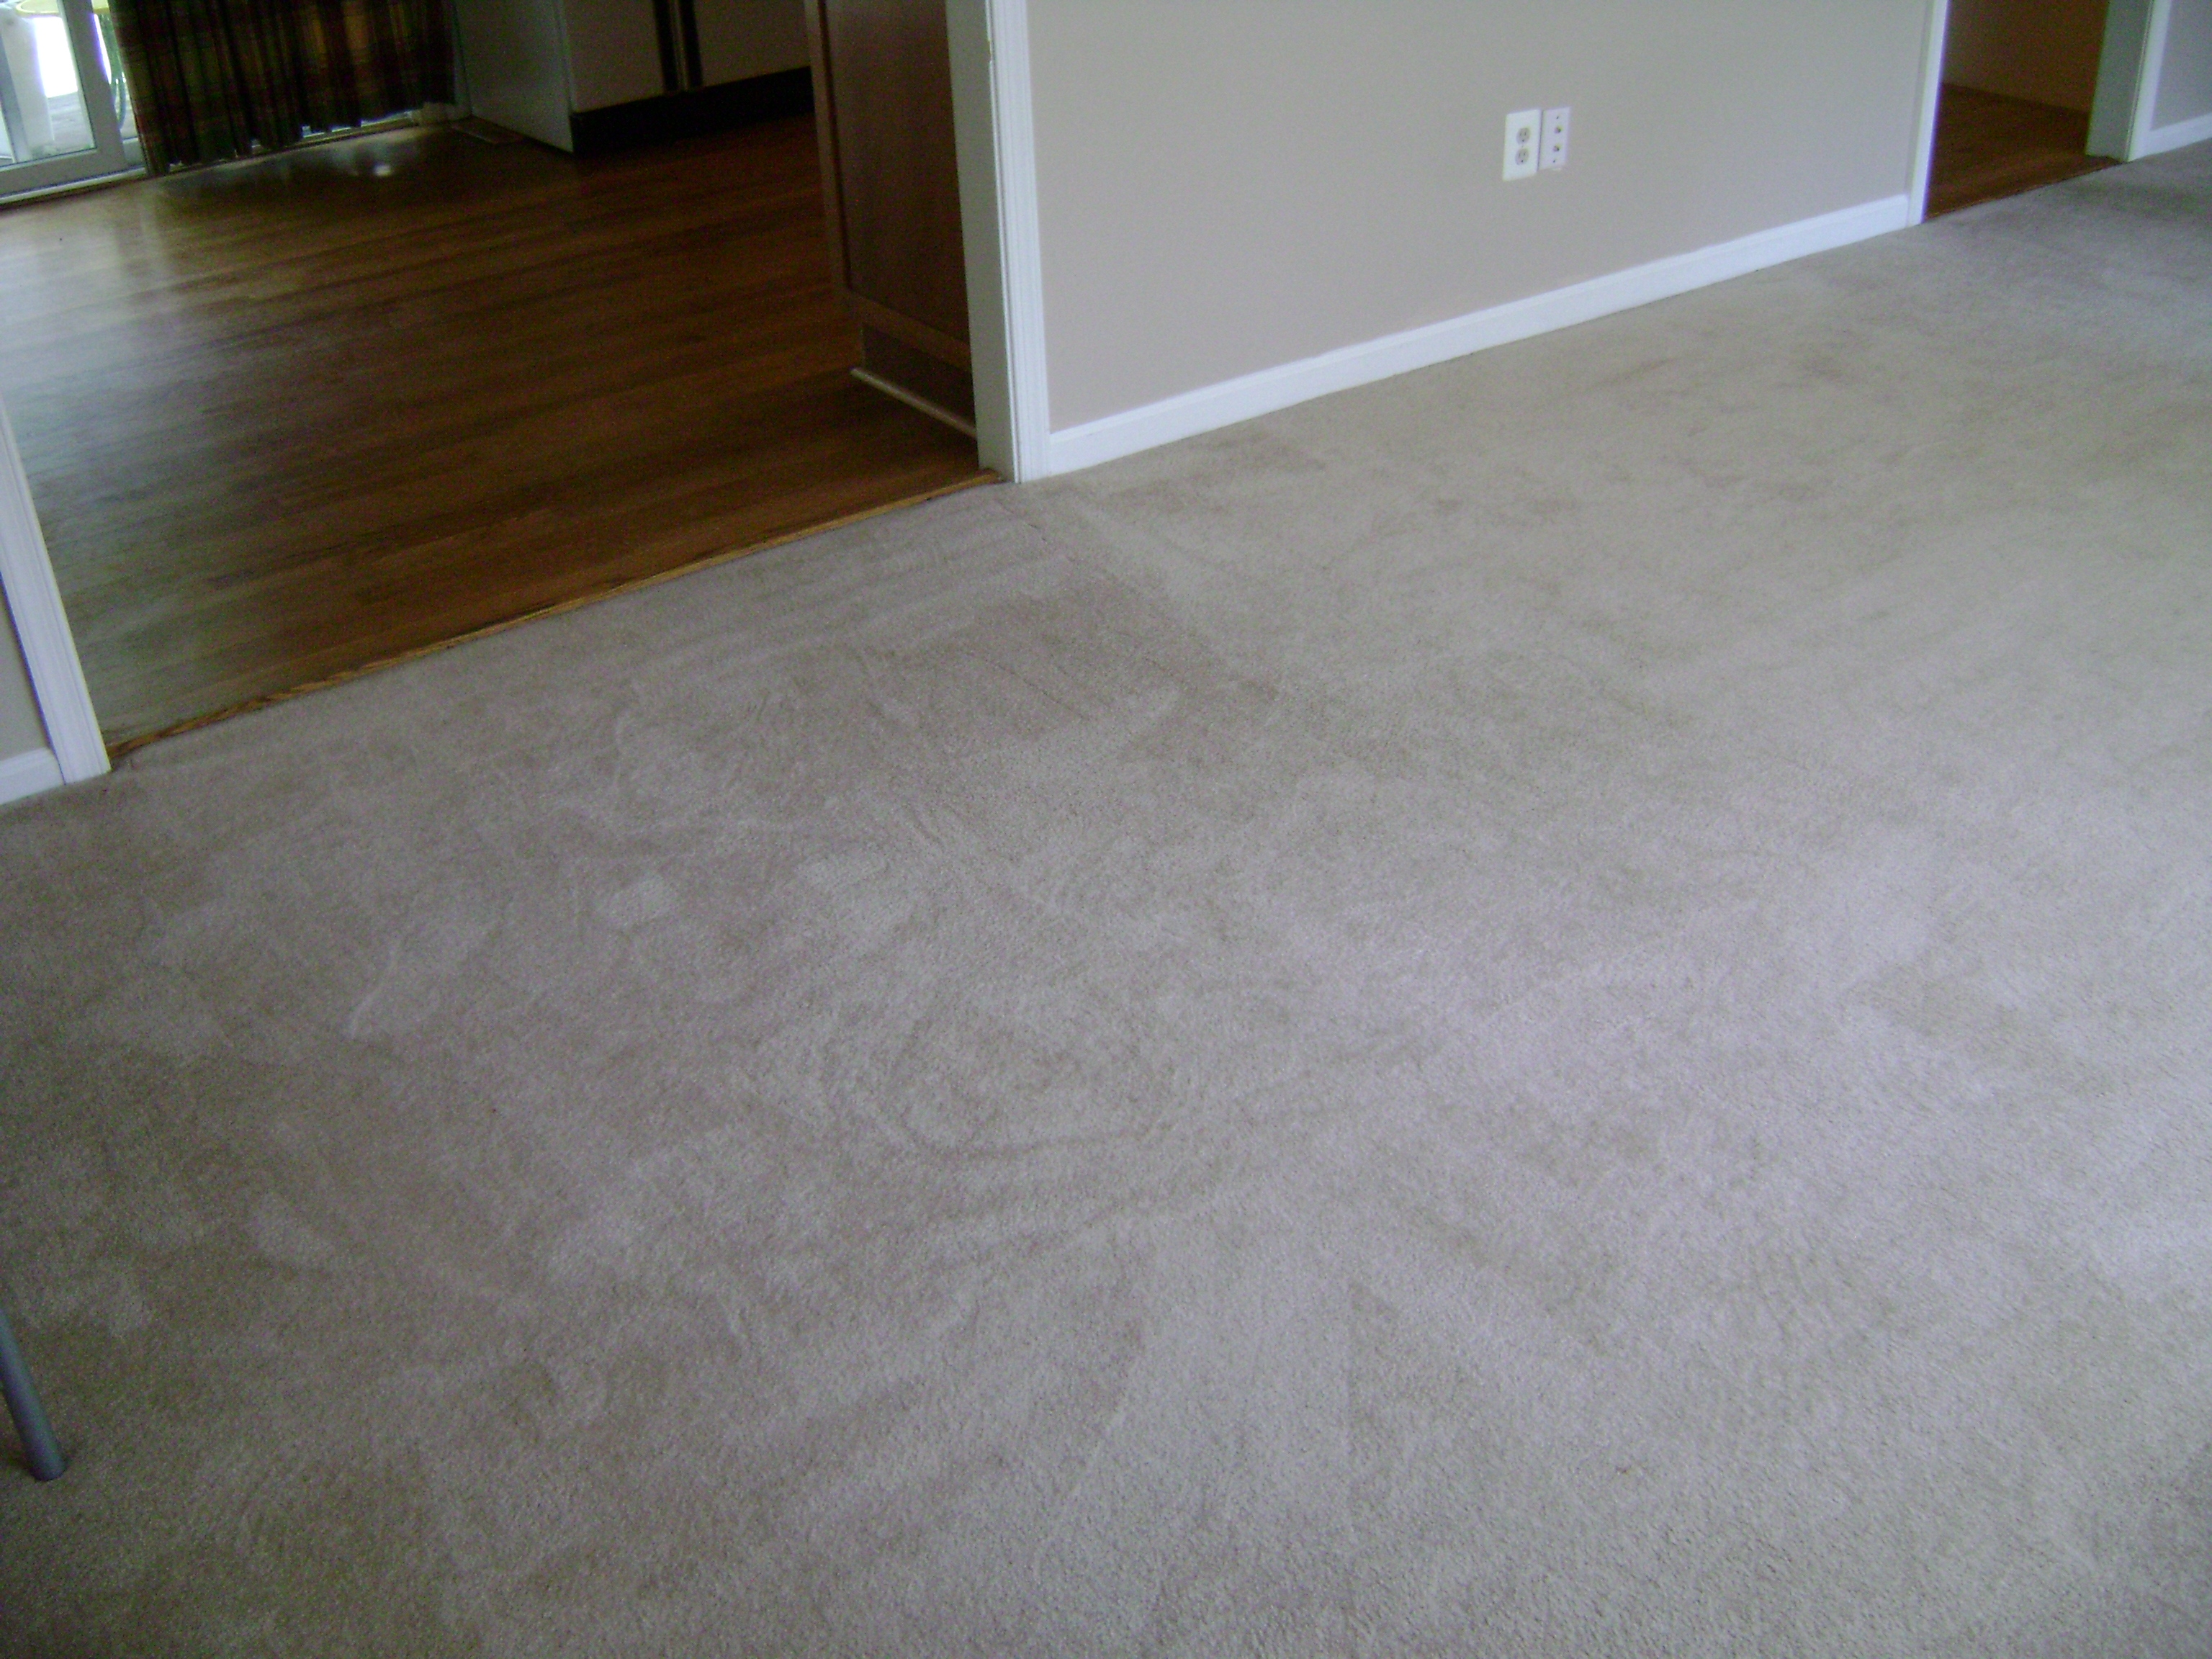 After A Professional Carpet Cleaning Fairfax Va, carpet cleaning shampooing fairfax, carpet steamcleaning shampooing fairfax va